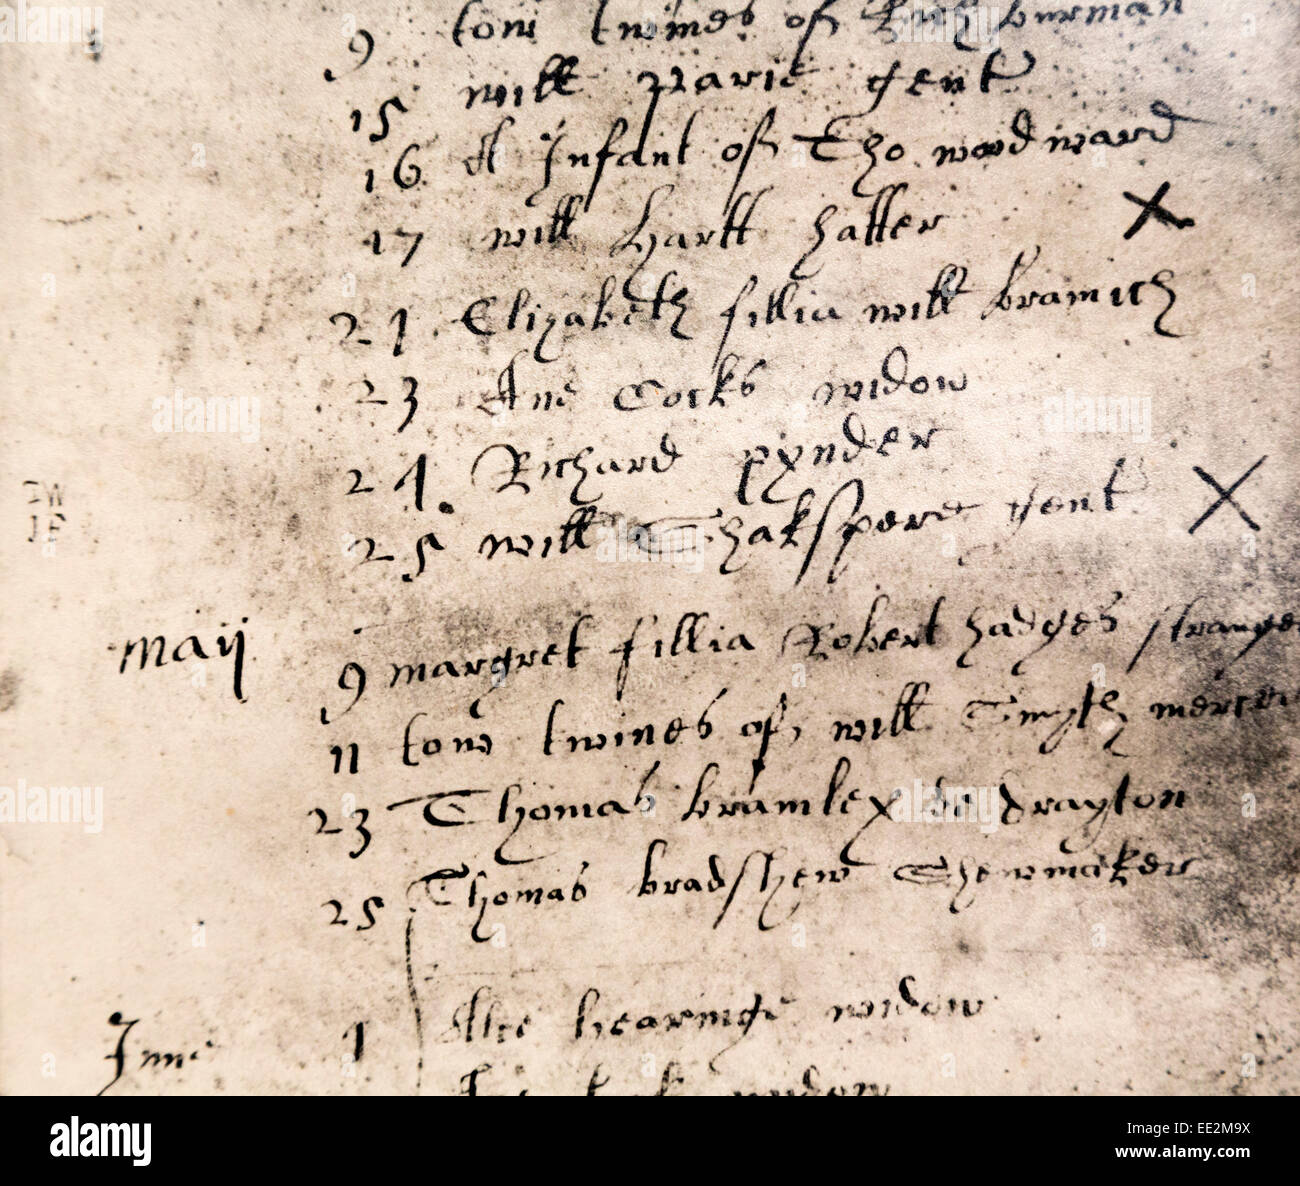 Stratford-upon-Avon, Warwickshire, England.  Facsimile register entry for burial of William Shakespeare on April - Stock Image